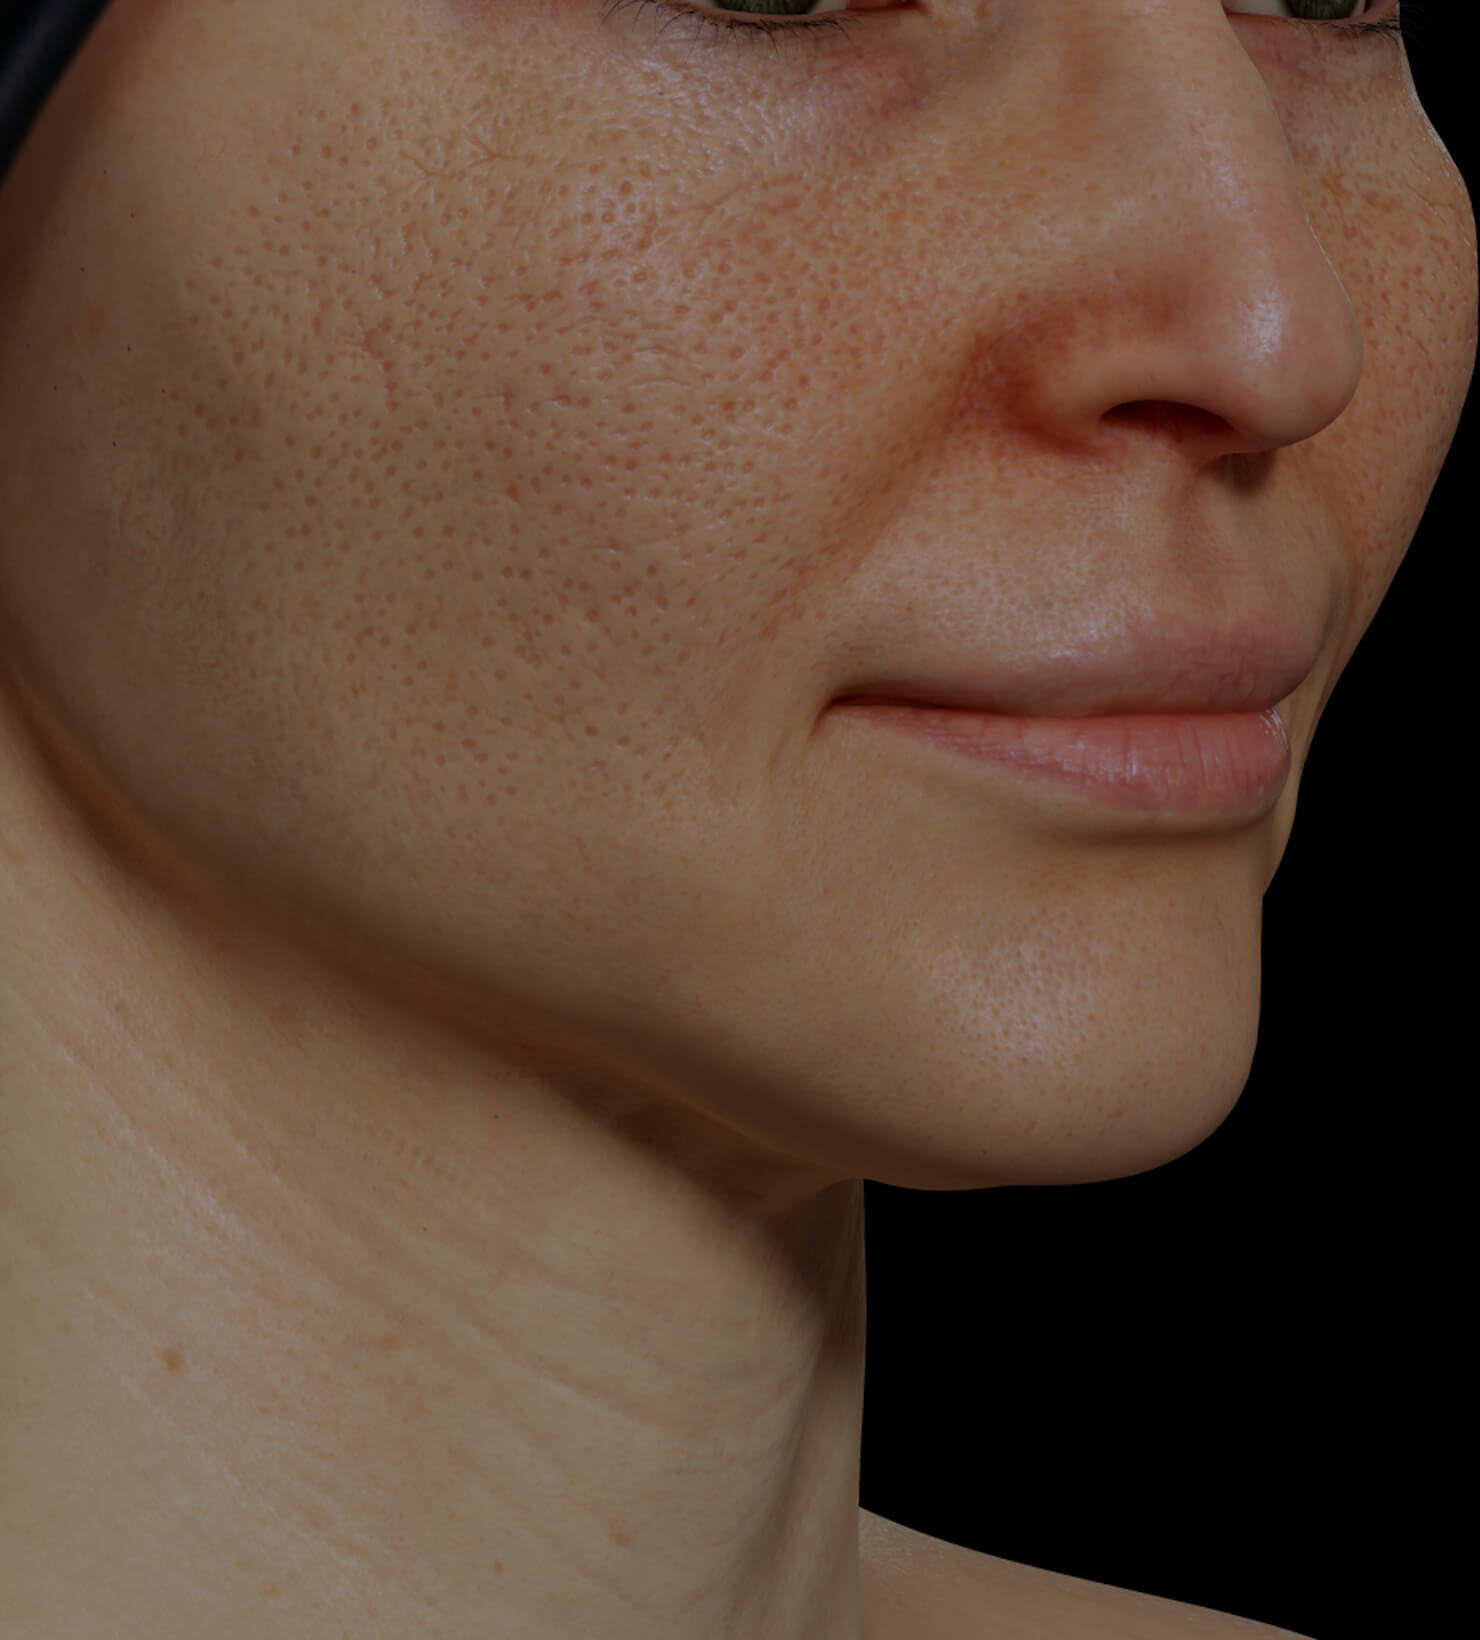 Clinique Chloé female patient with dilated pores on the face getting treated with Venus Viva fractional radiofrequency